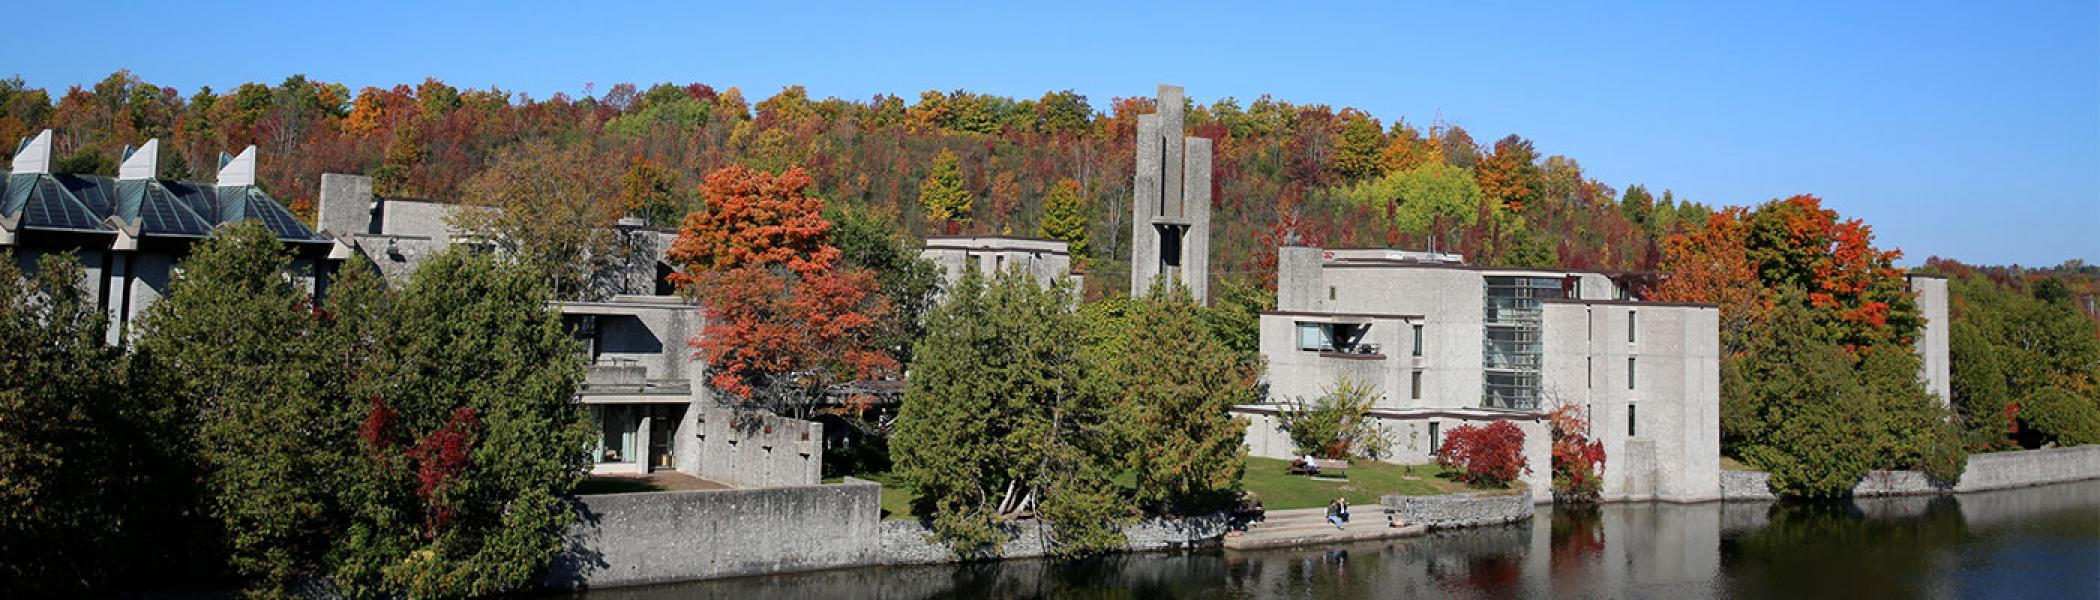 Champlain College in the fall surrounded by colourful trees